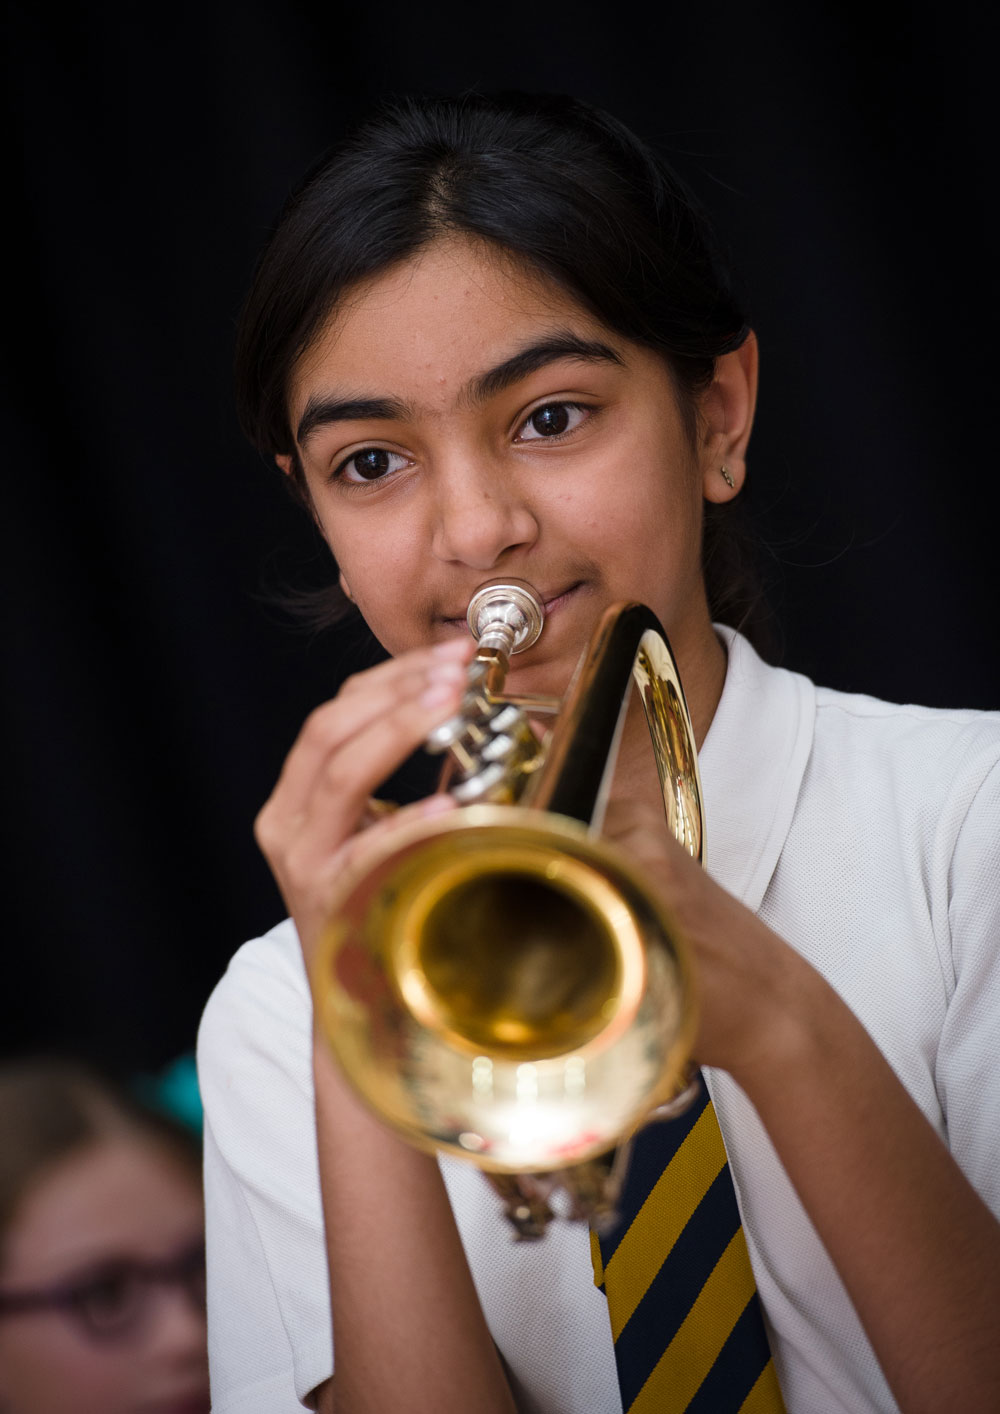 Girl playing the trumpet